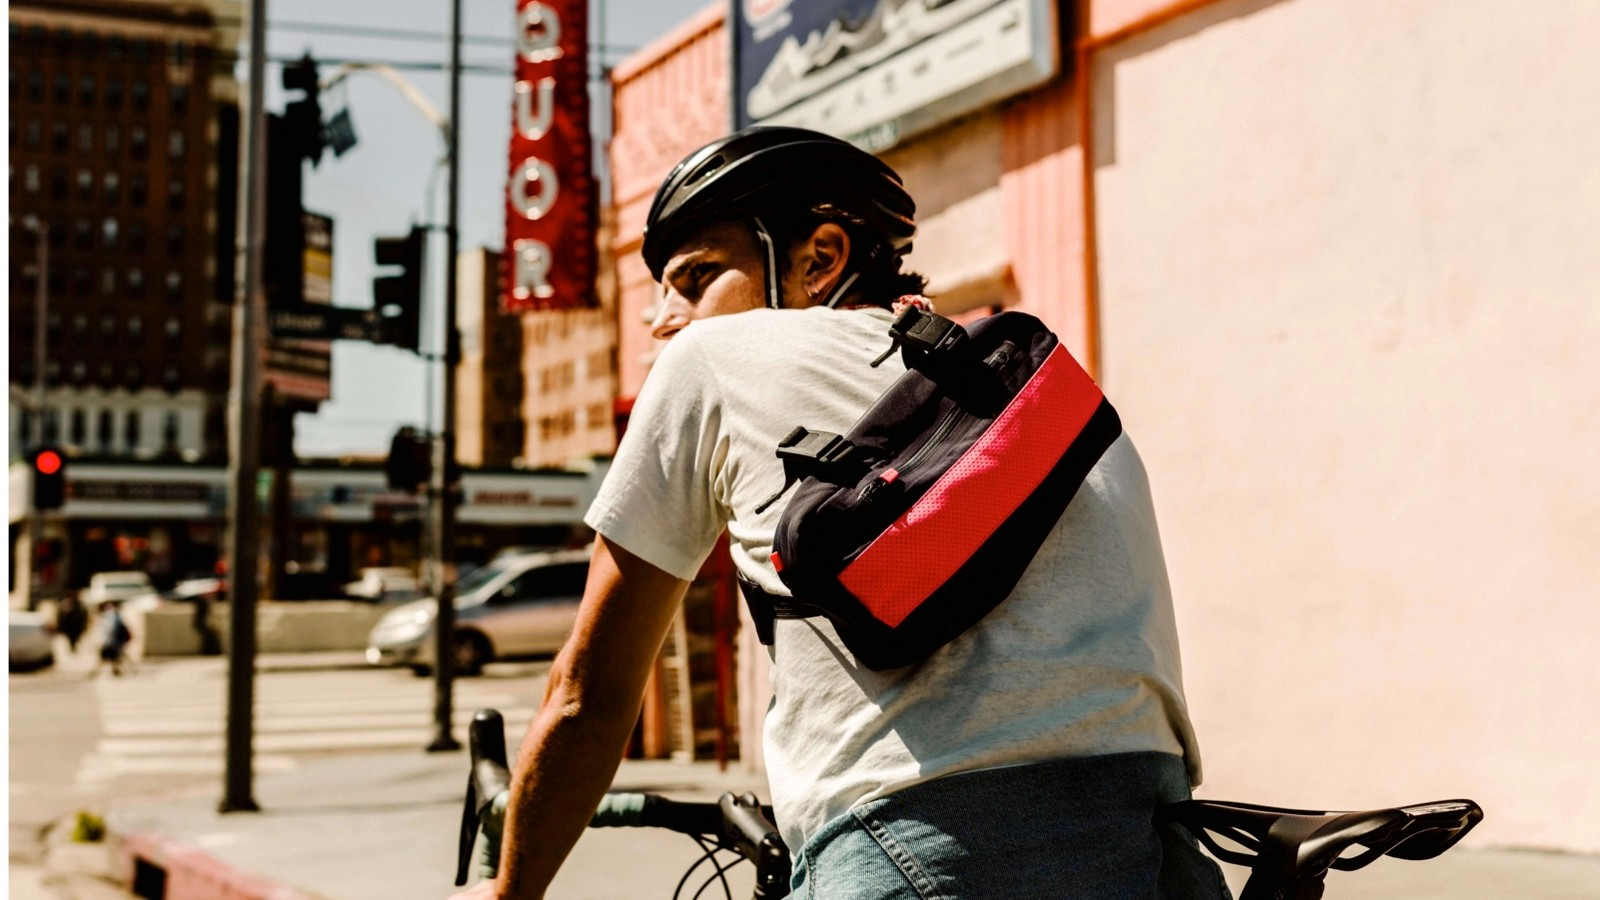 Rapha is calling this handlebar bag a Mini Messenger Bag because you can also wear it like this